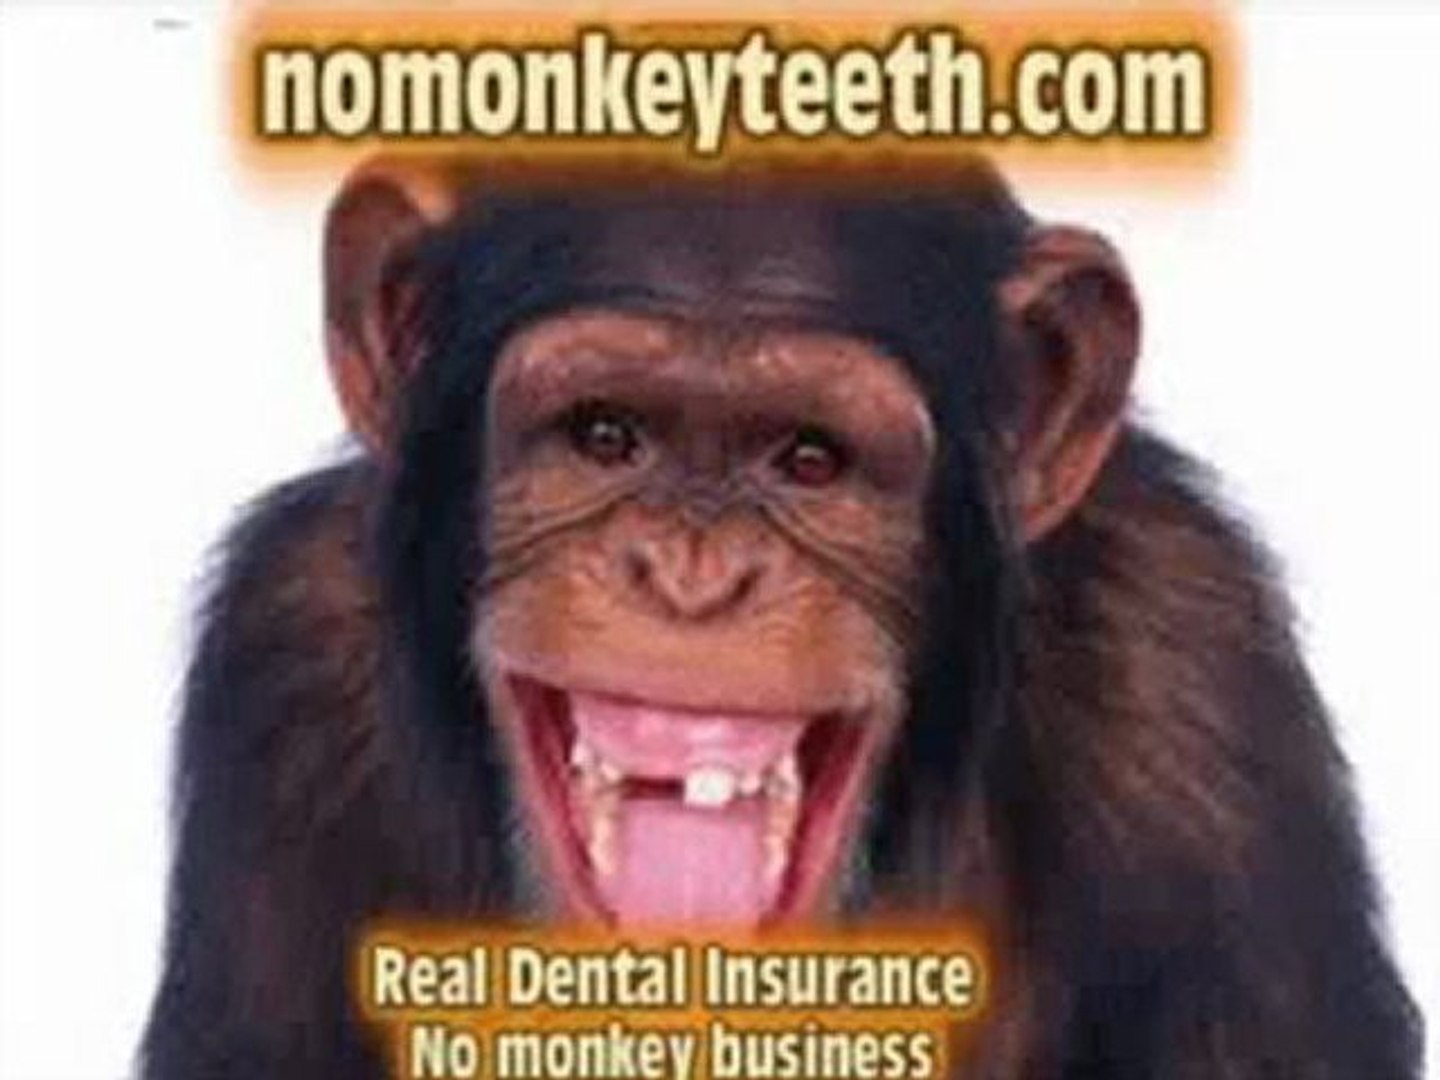 Go to www.mydentalsaver.com if you  are looking for Affordable Dental Insurance in Florida, Californ